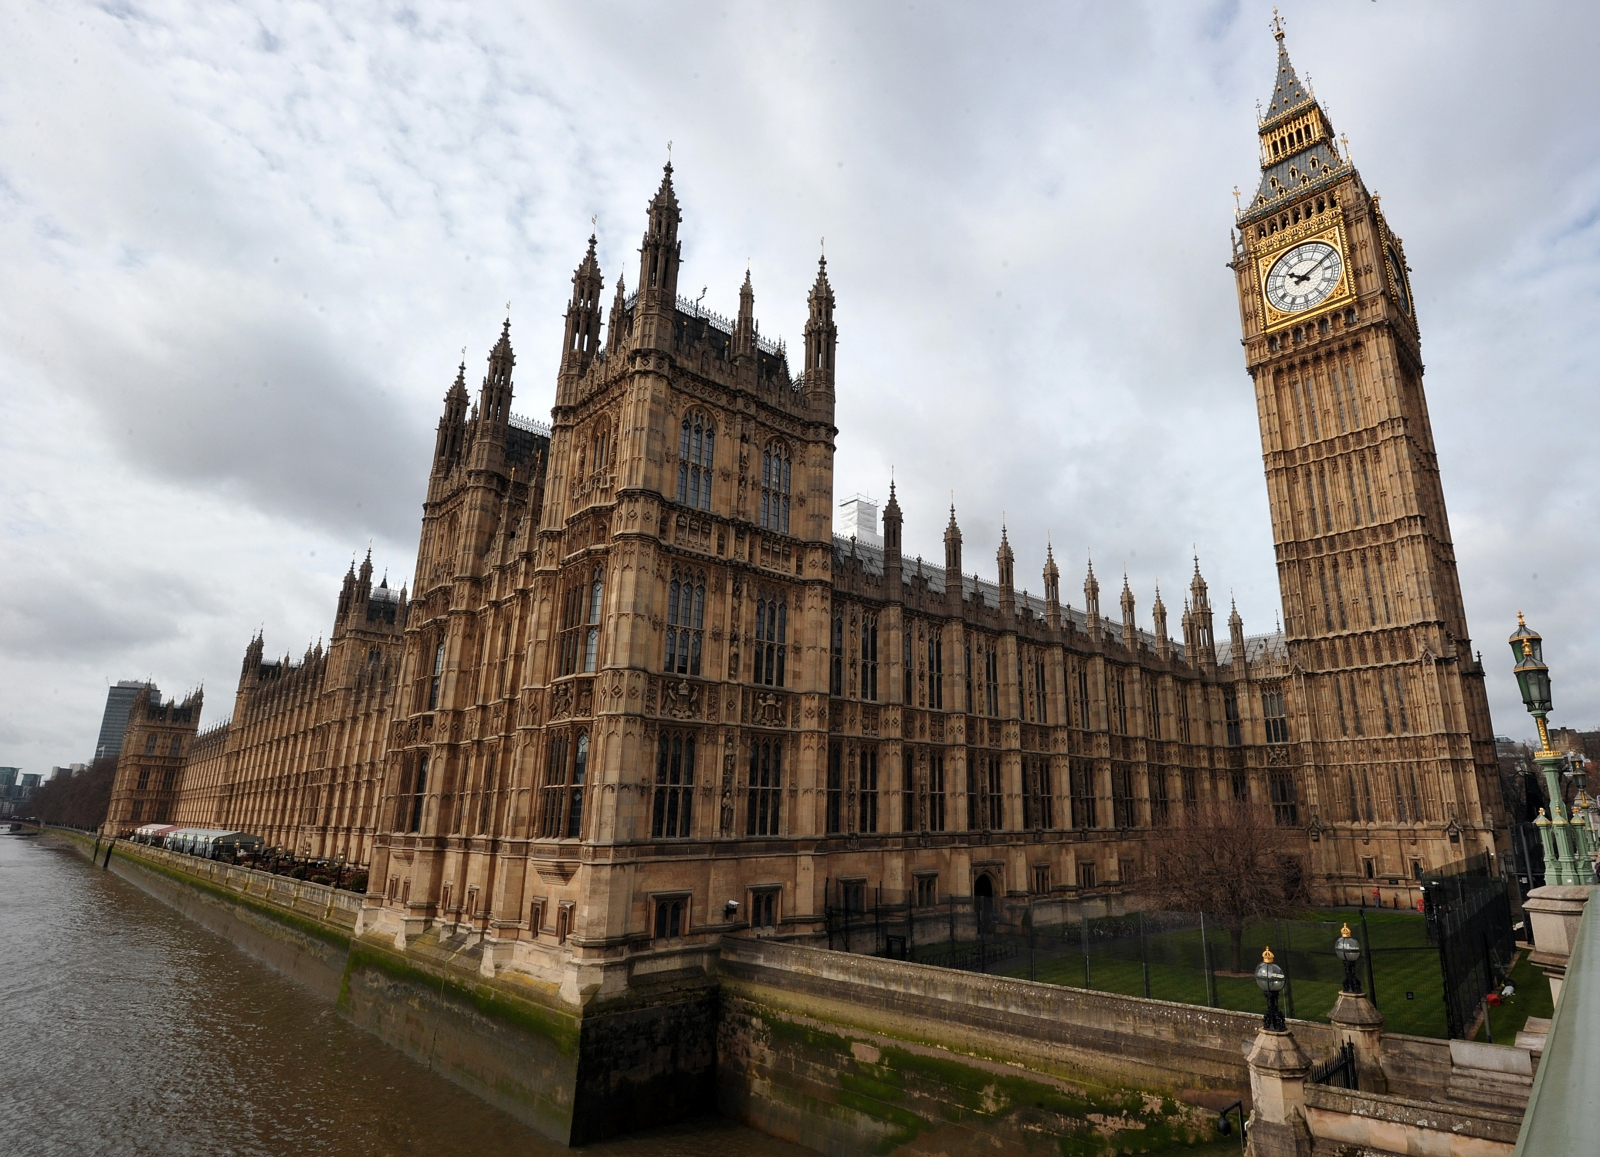 The UK's Houses of Parliament.